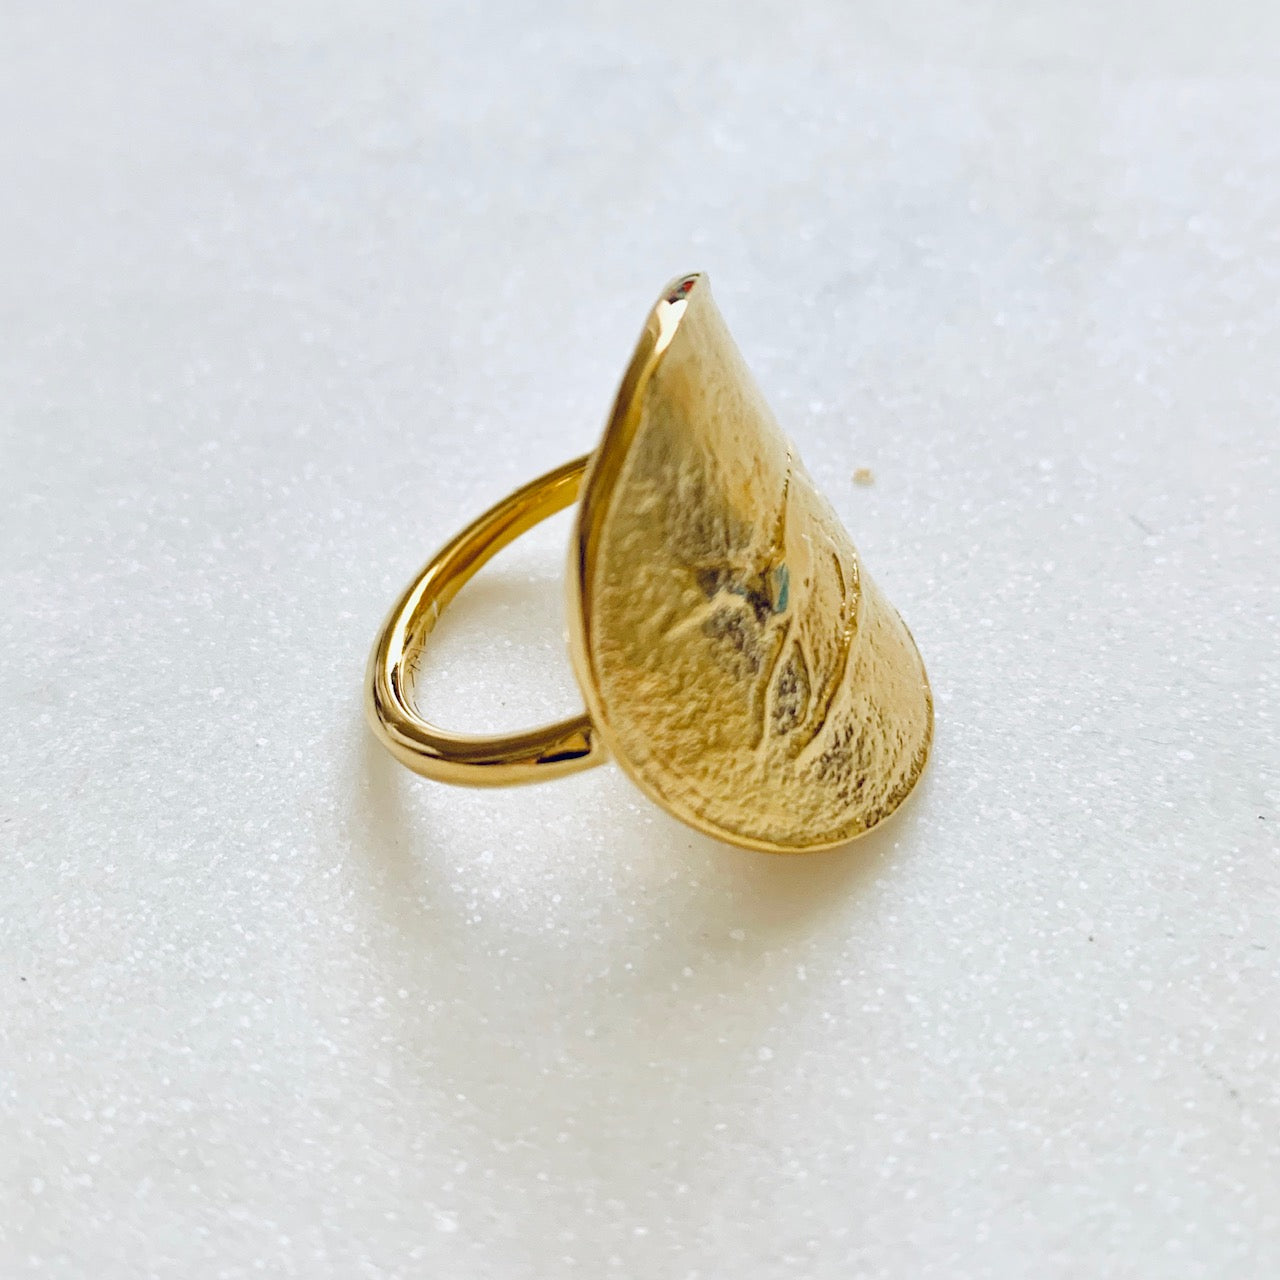 Gold Hunting Coin Ring by Pearl & Queenie